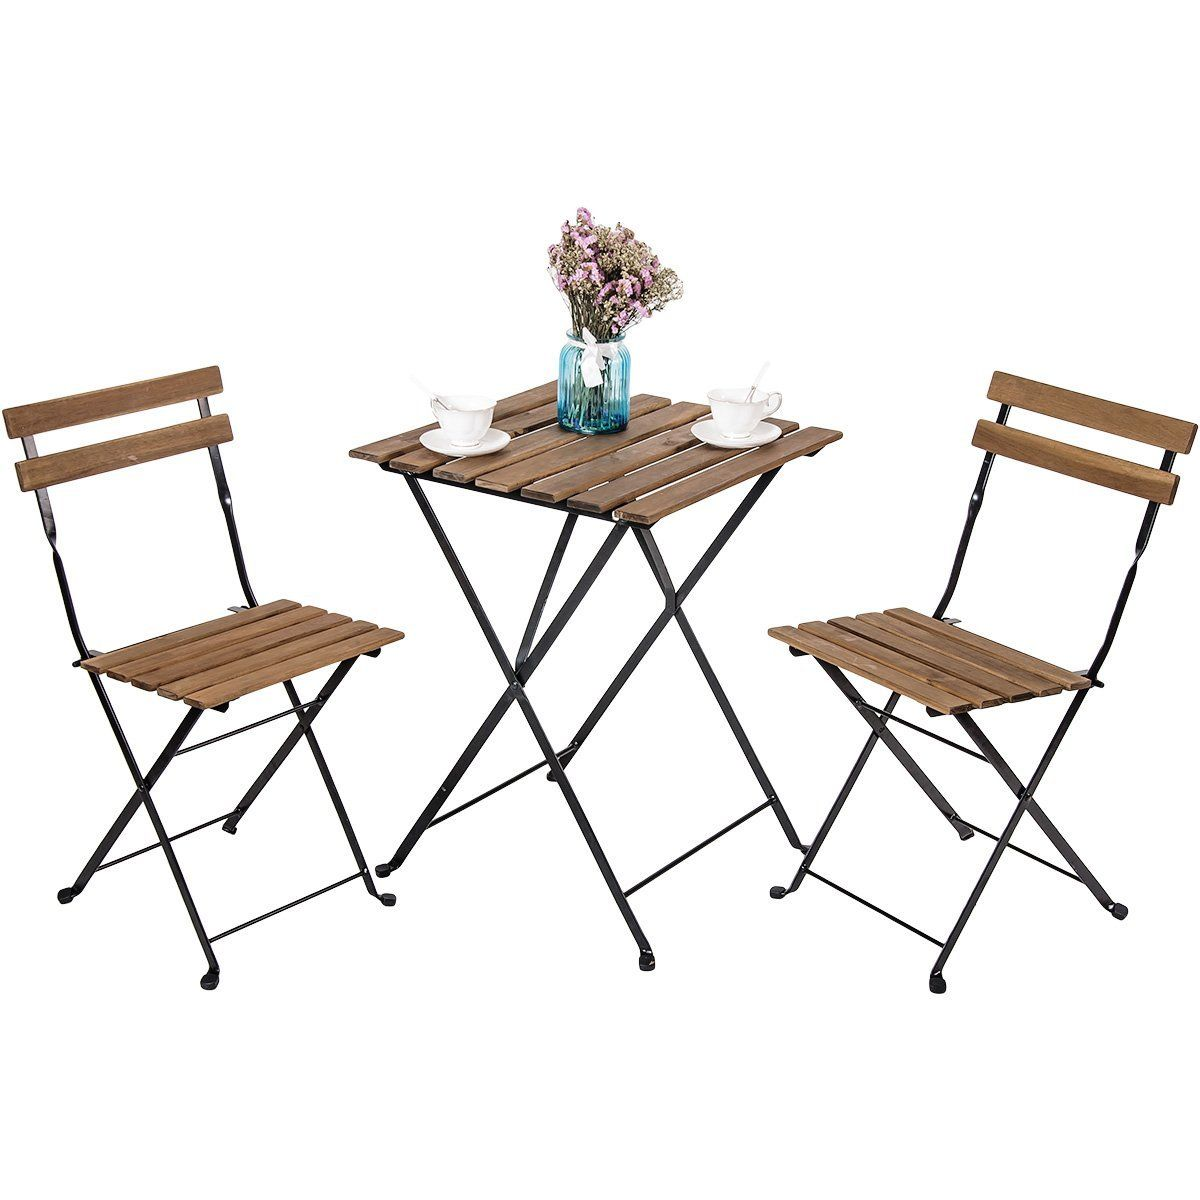 Leisure Zone Outdoor Folding Bistro Set 3 Piece Patio Table And Chairs Set Metal And So Wicker Dining Chairs Outdoor Furniture Sets Outdoor Chairs